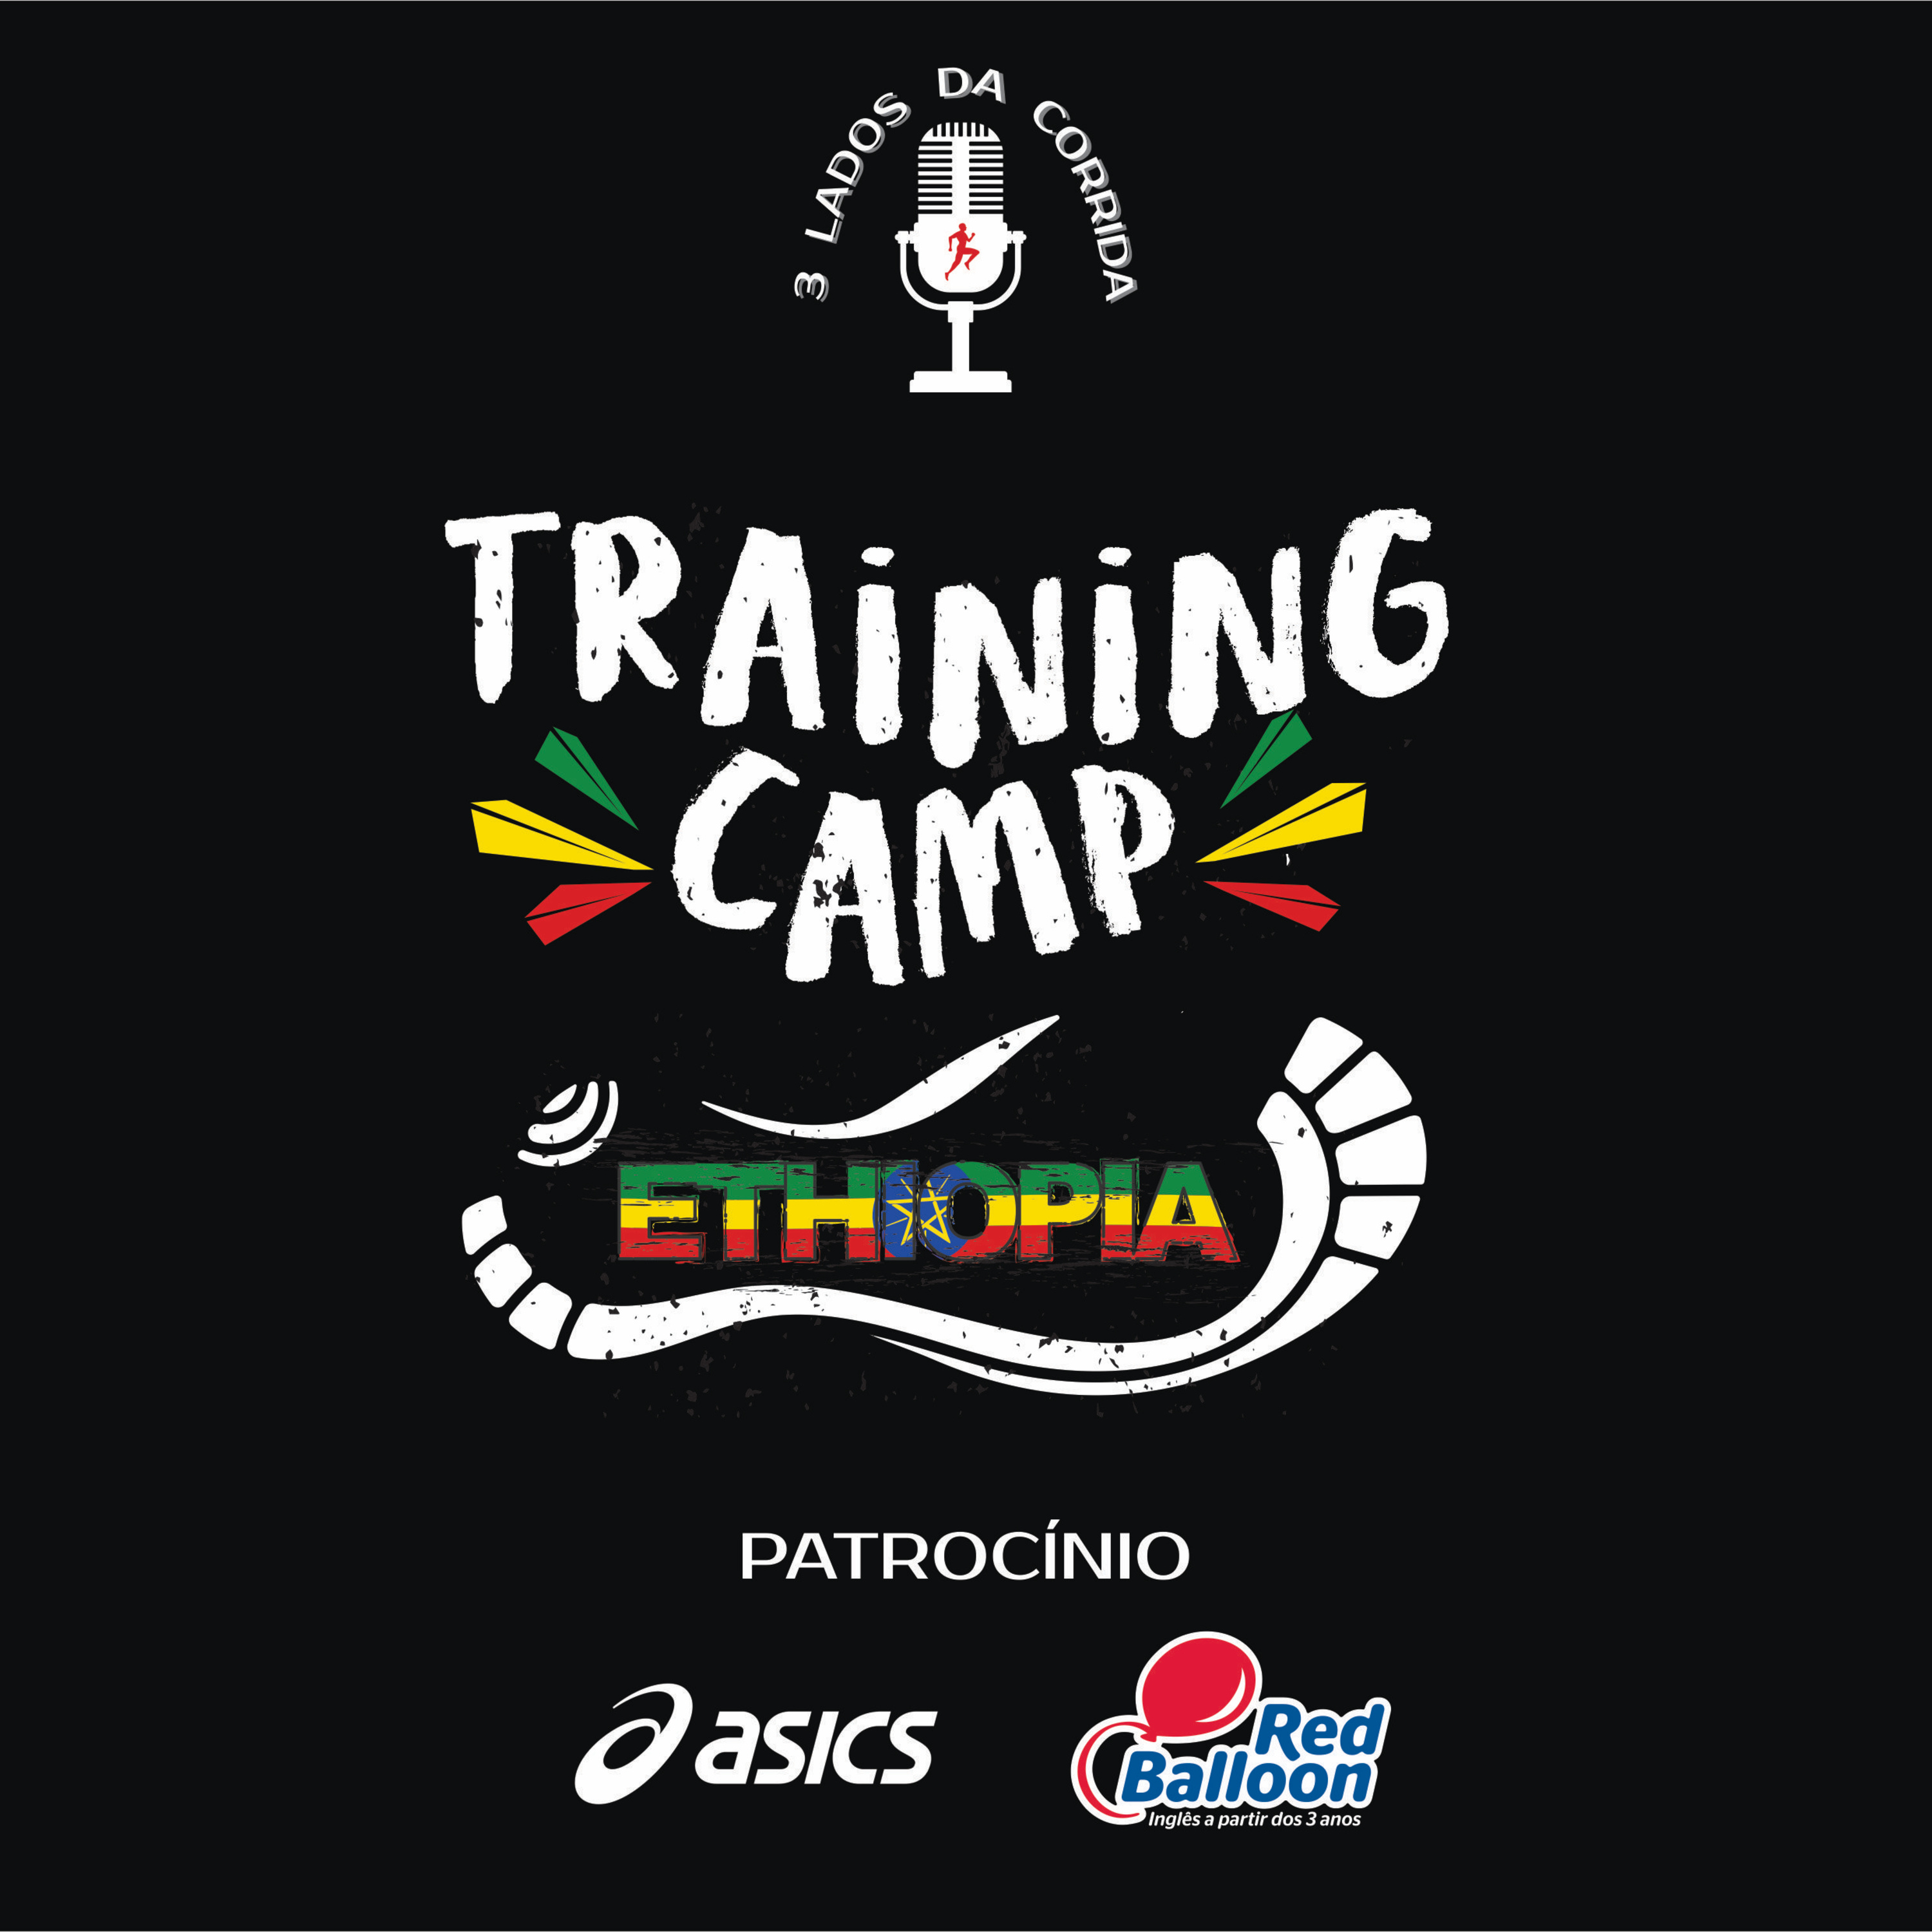 Episódio 70 - Training camp Etiópia